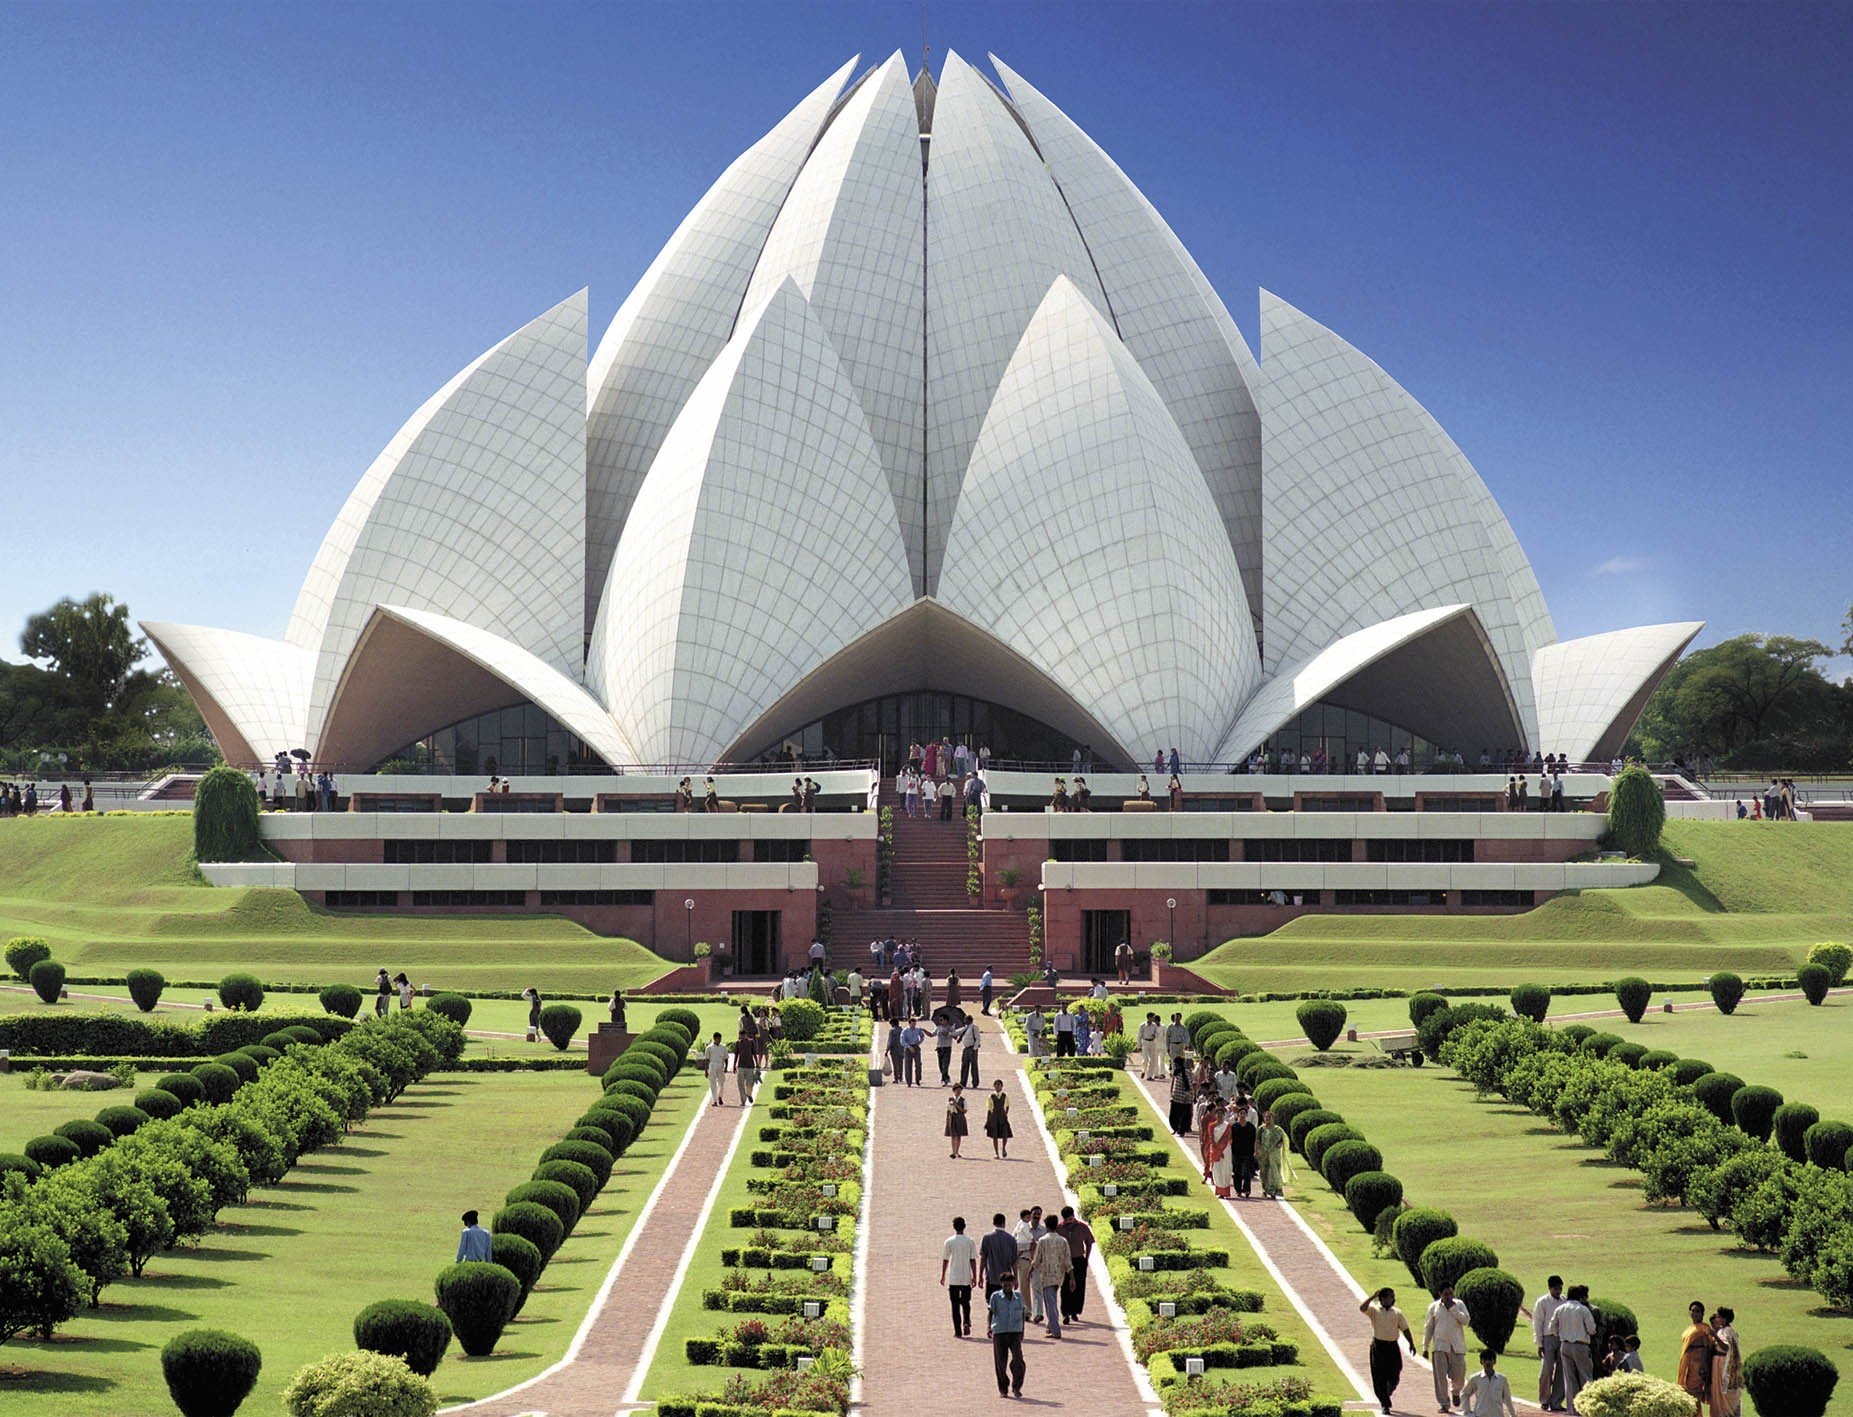 Top 10 Stunning Religious Buildings In Images - Listverse